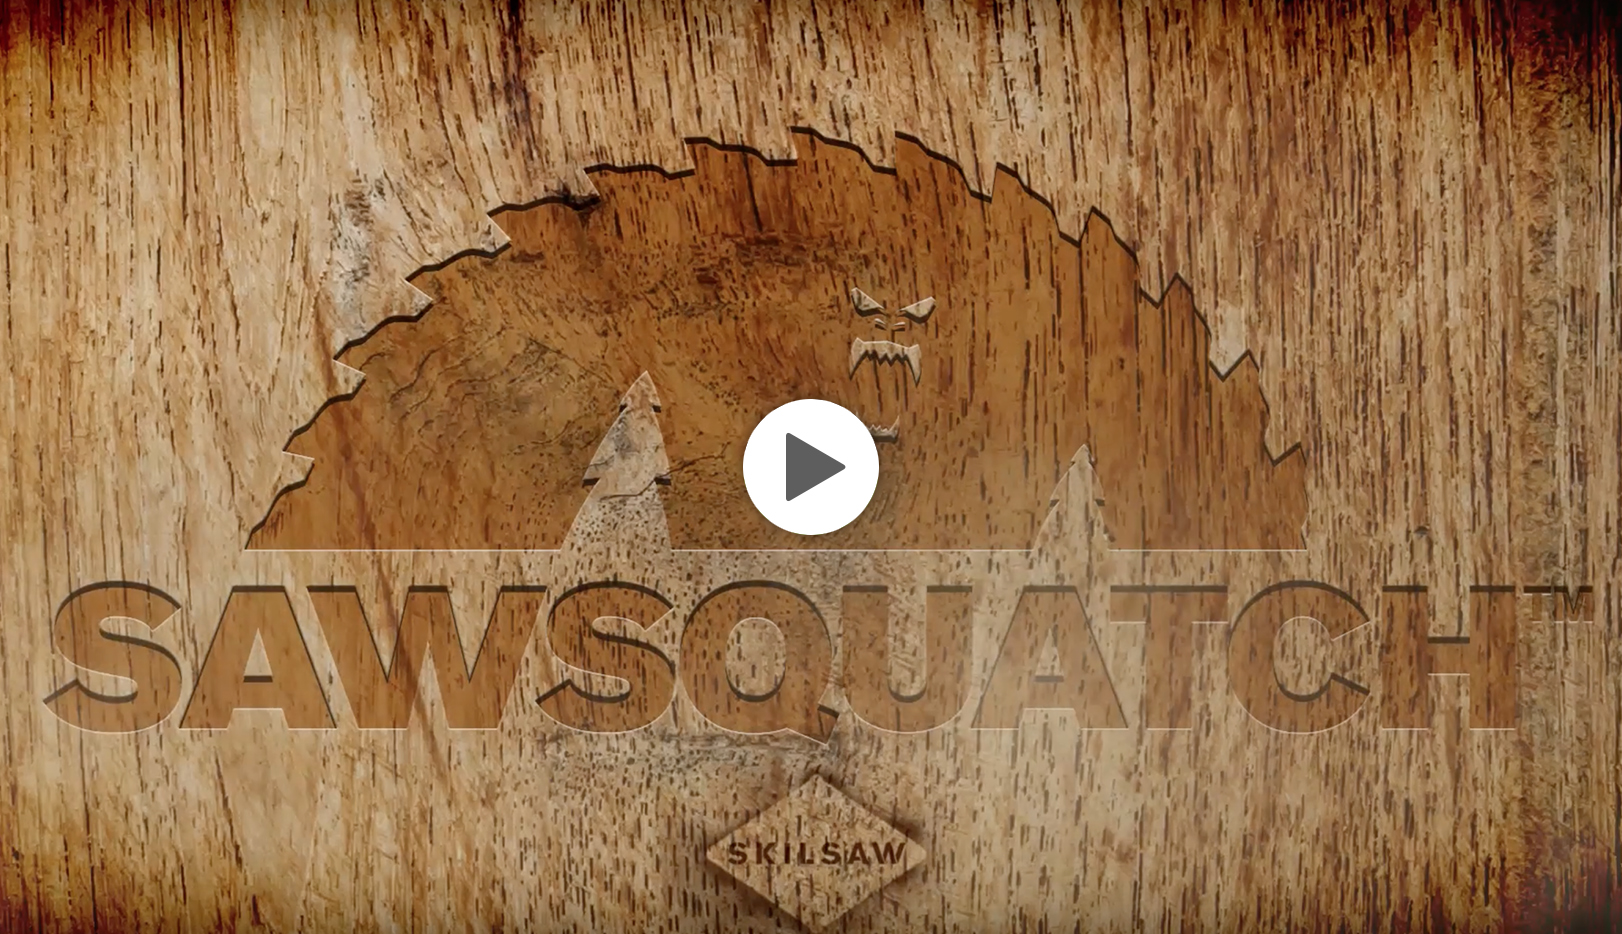 Sawsquatch™ Teaser